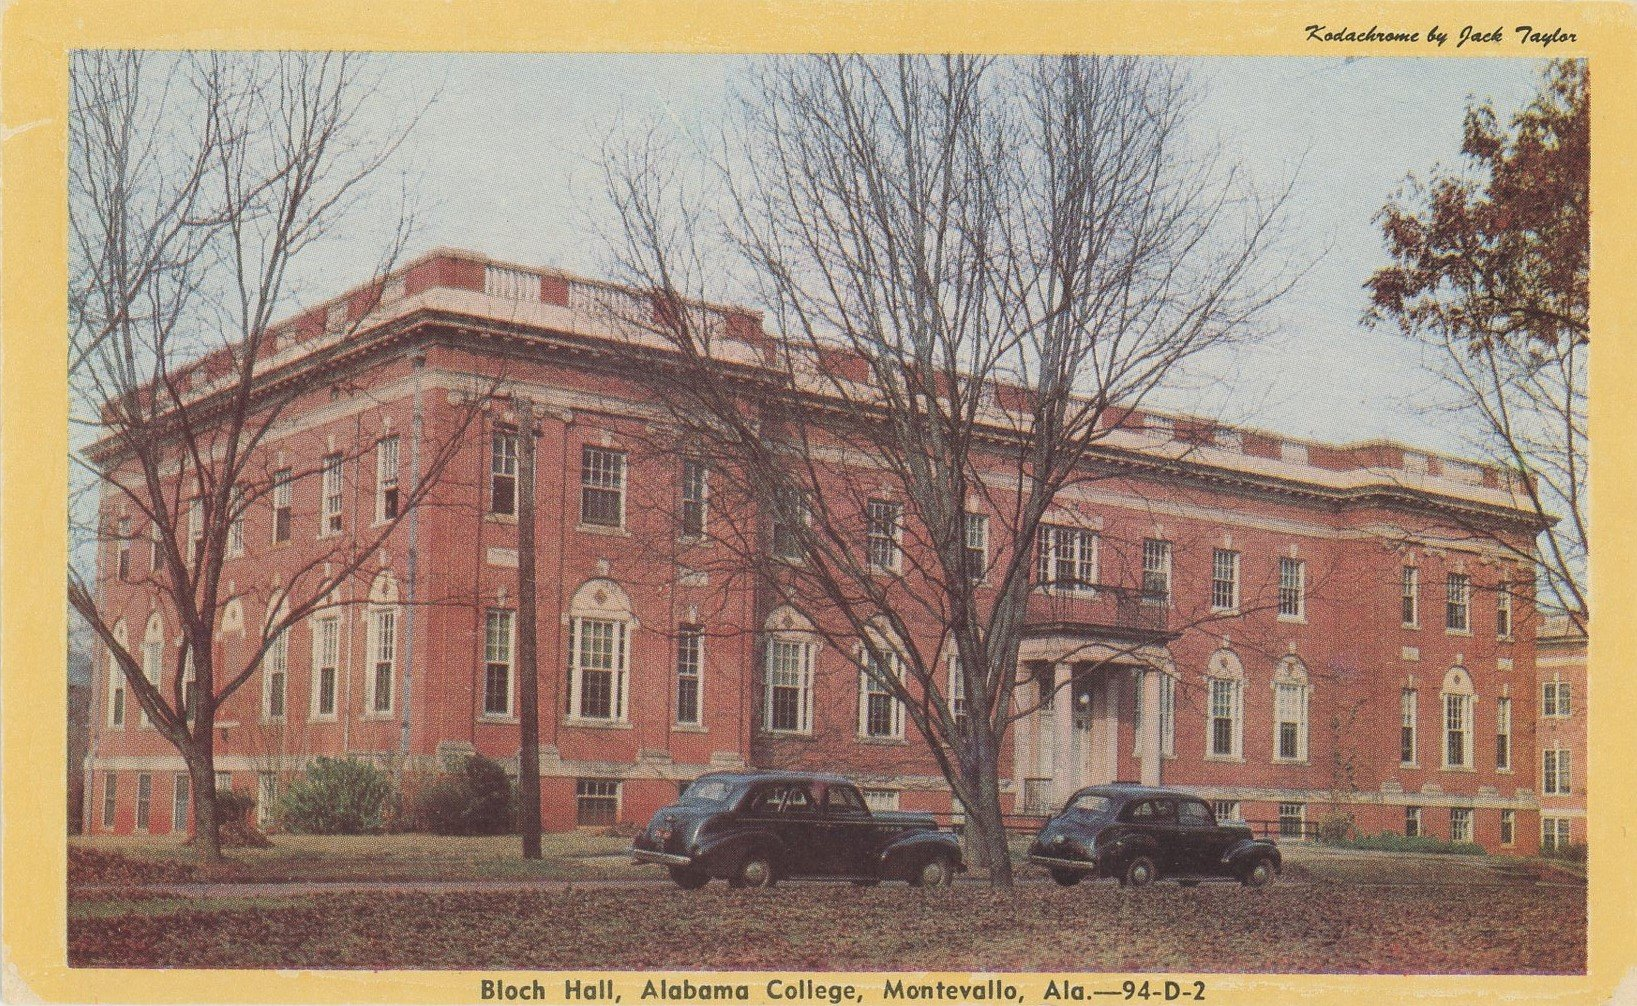 A postcard with a picture of Bloch Hall